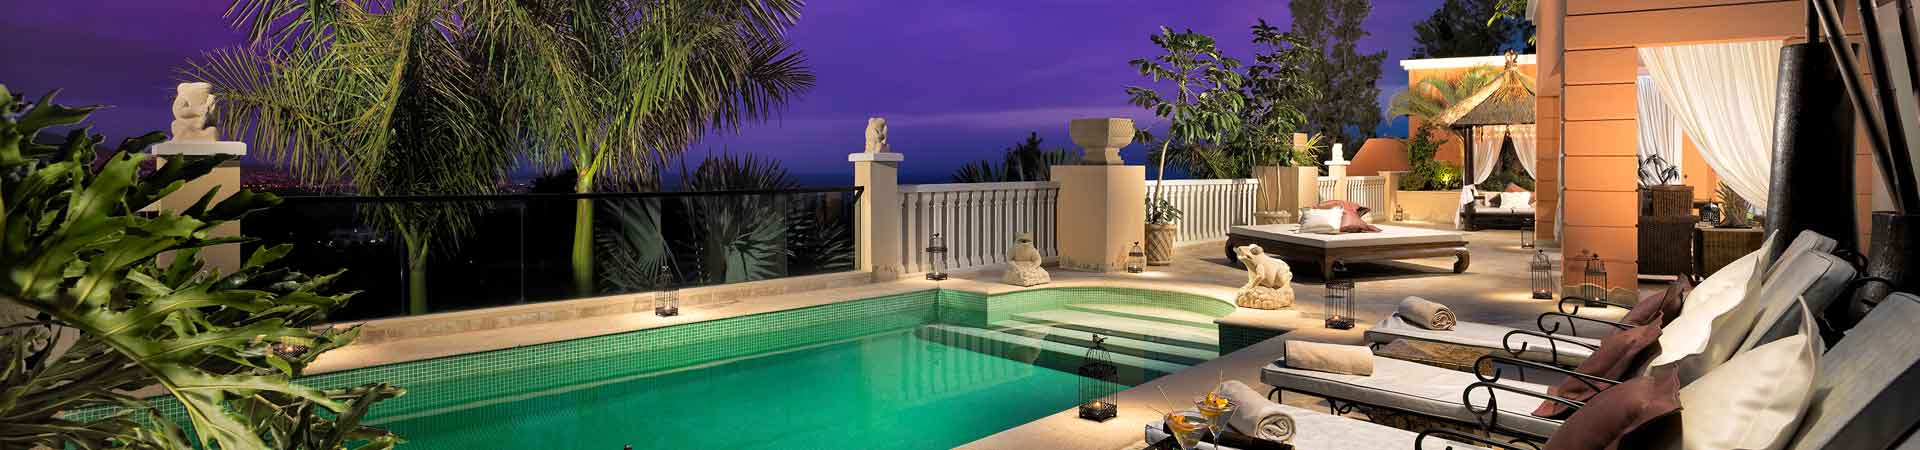 https://www.goodmorningtenerife.com/wp-content/uploads/2015/01/02_slide_hotel-Royal-Garden-Villas-Spa.jpg